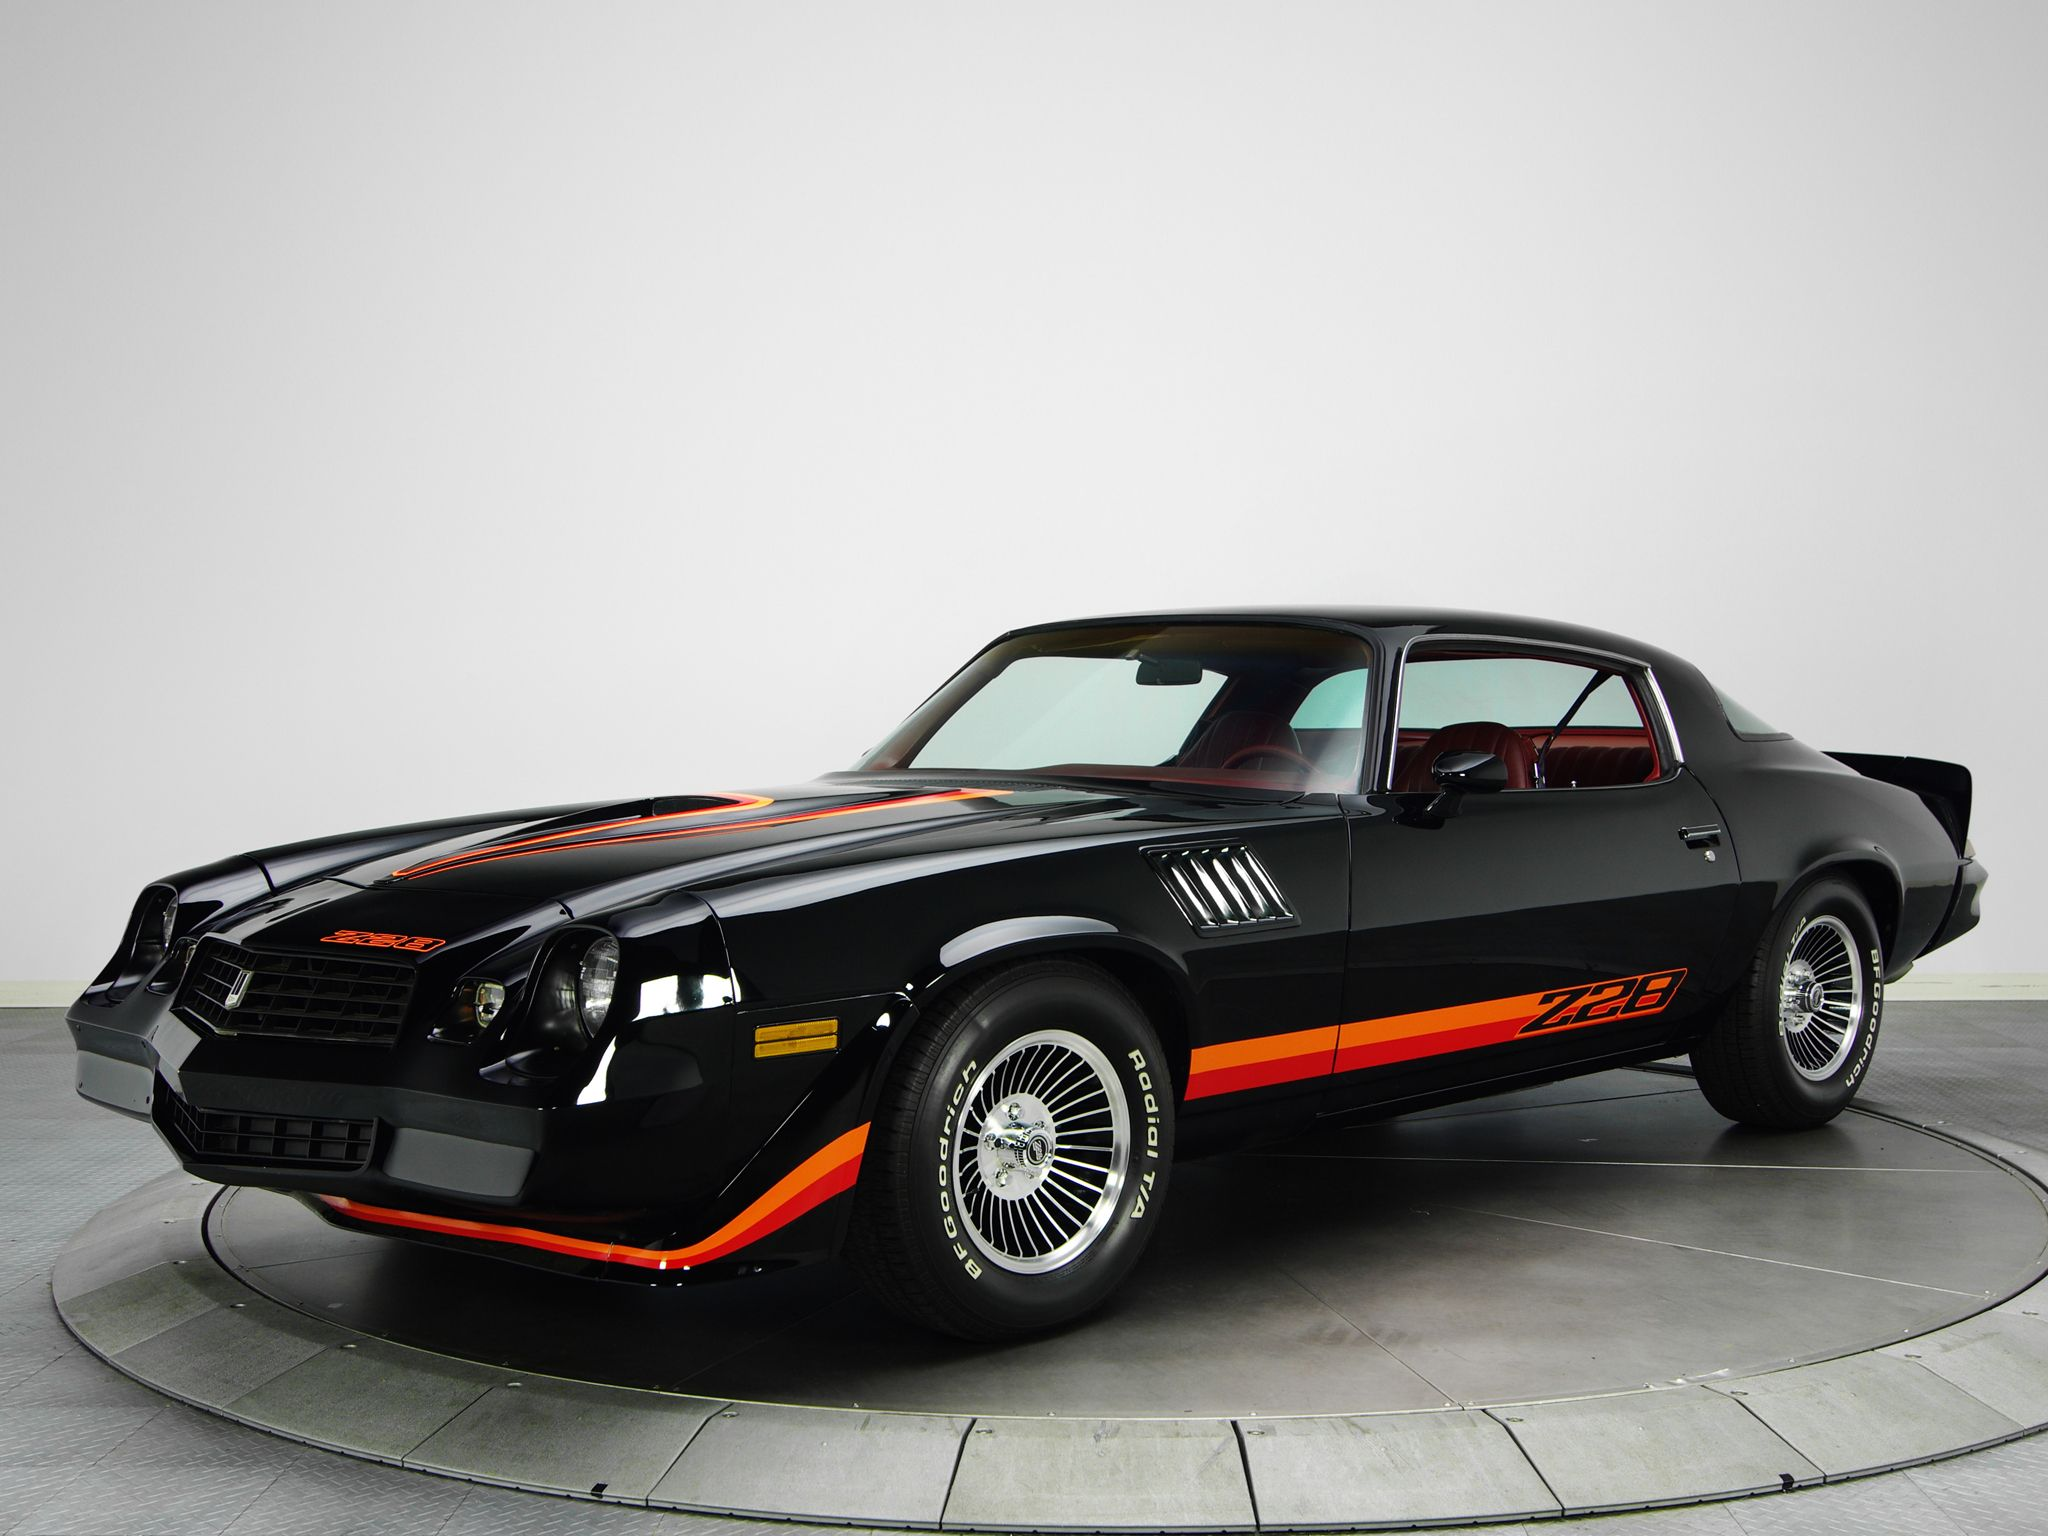 1981 Camaro Z28 | Chevrolet Camaro Z28 1978–1981 wallpaper (6)